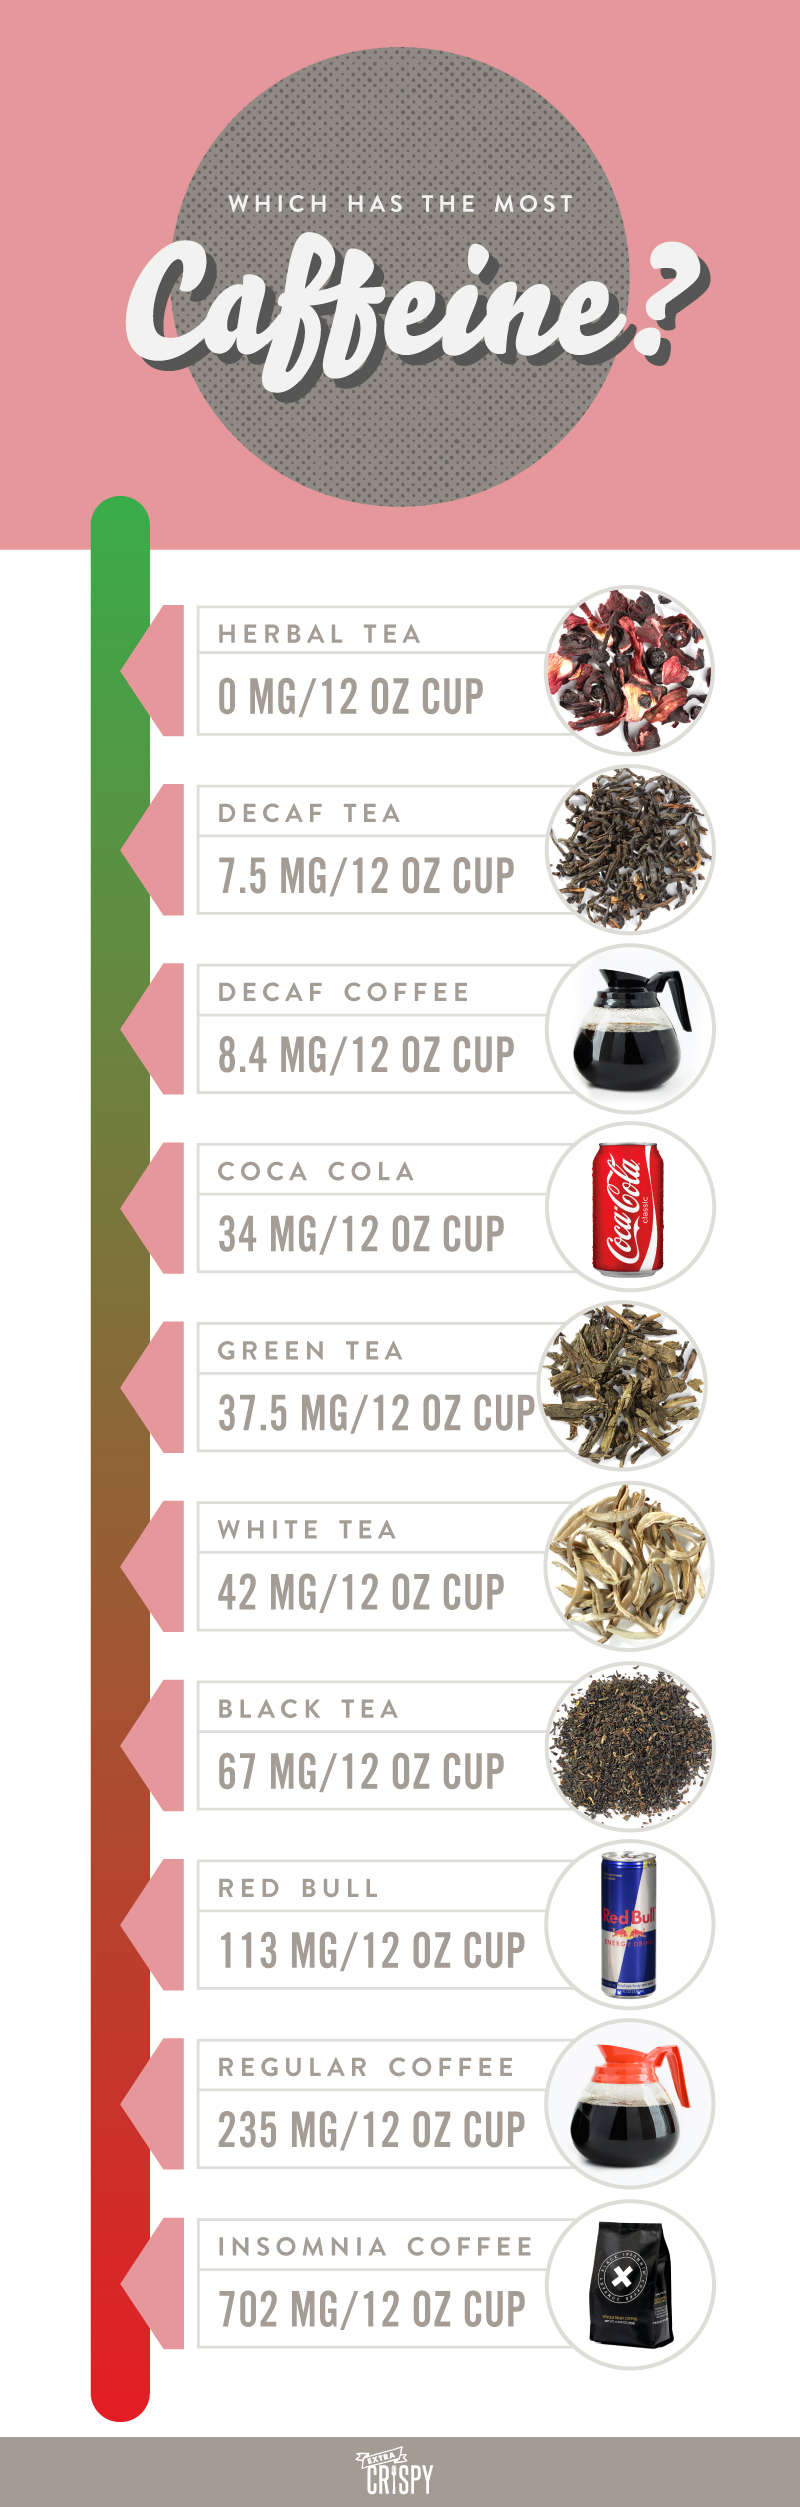 How Much Caffeine Is in Coffee, Tea, and Energy Drinks?